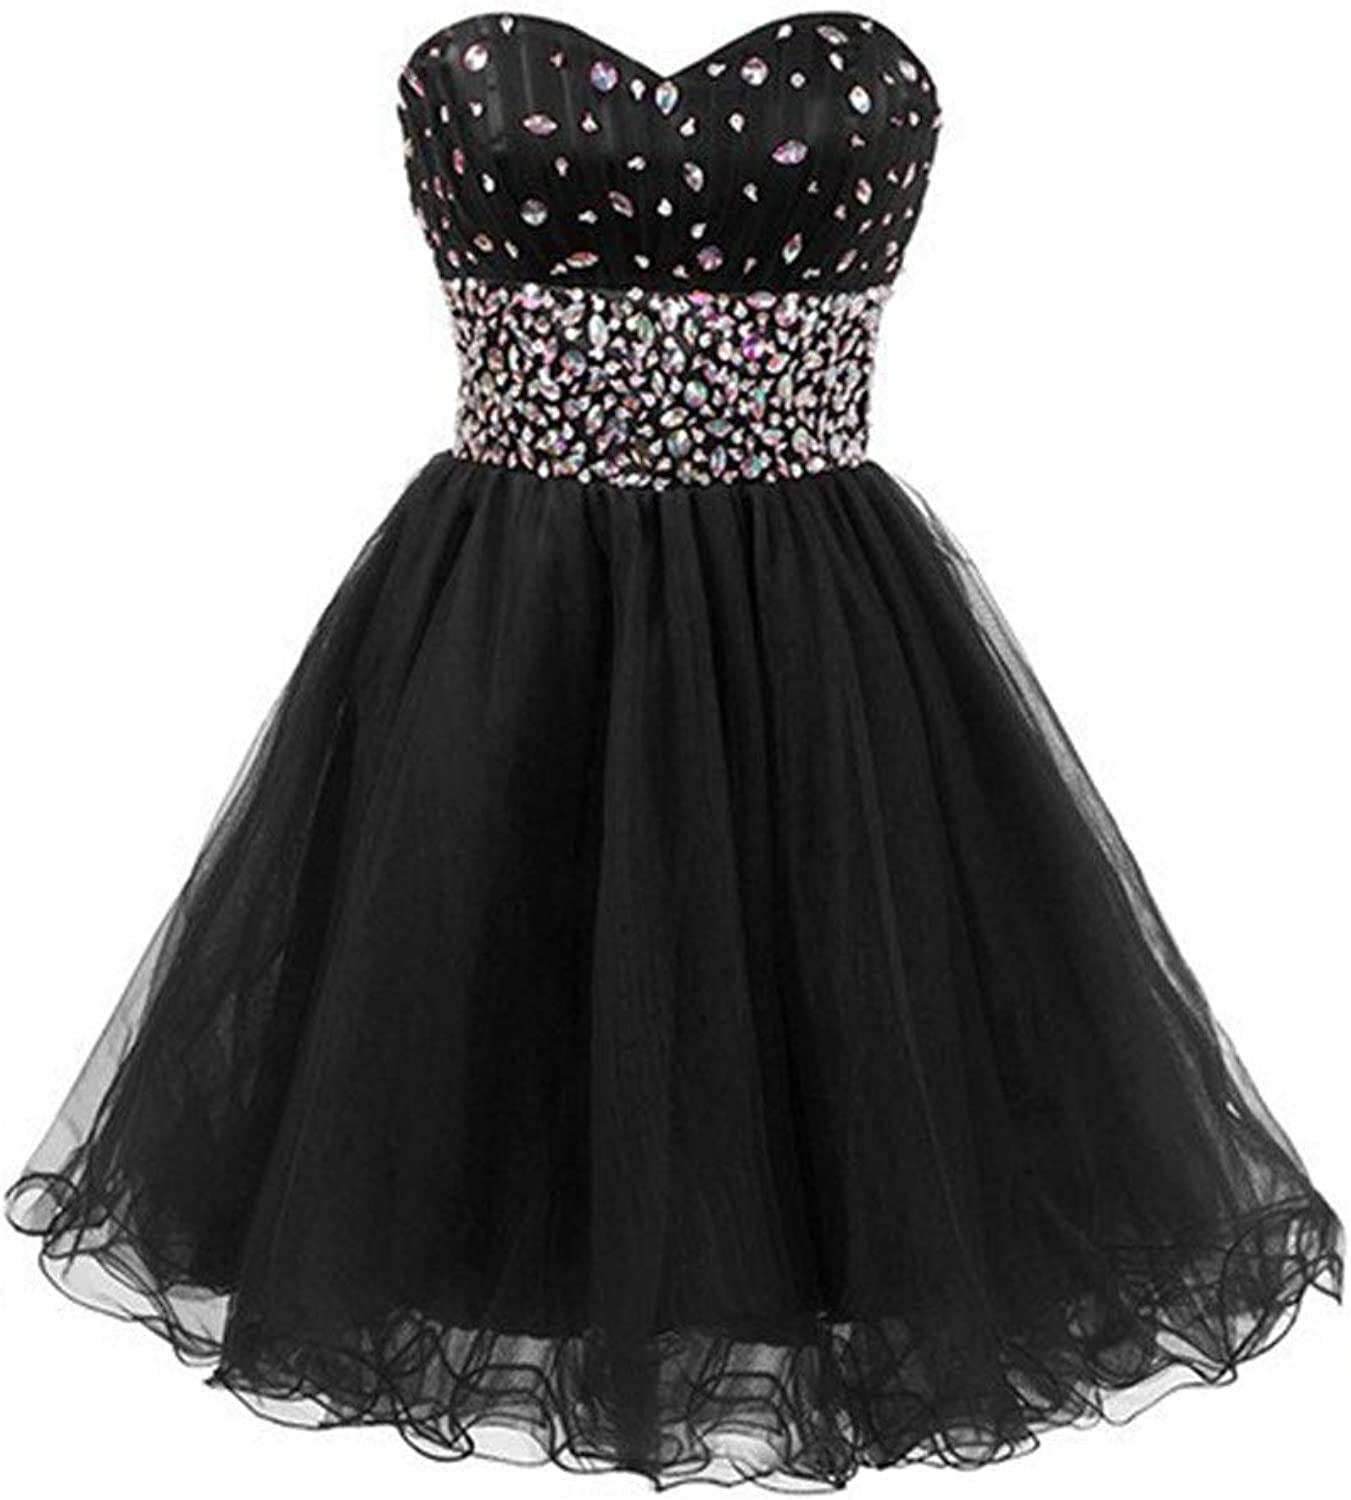 Bridesmaid Dress Women's Tube Top Beads Vintage Collection Small Dress Short Dress Sexy Dress for Cocktail Party (color   Black, Size   US10)